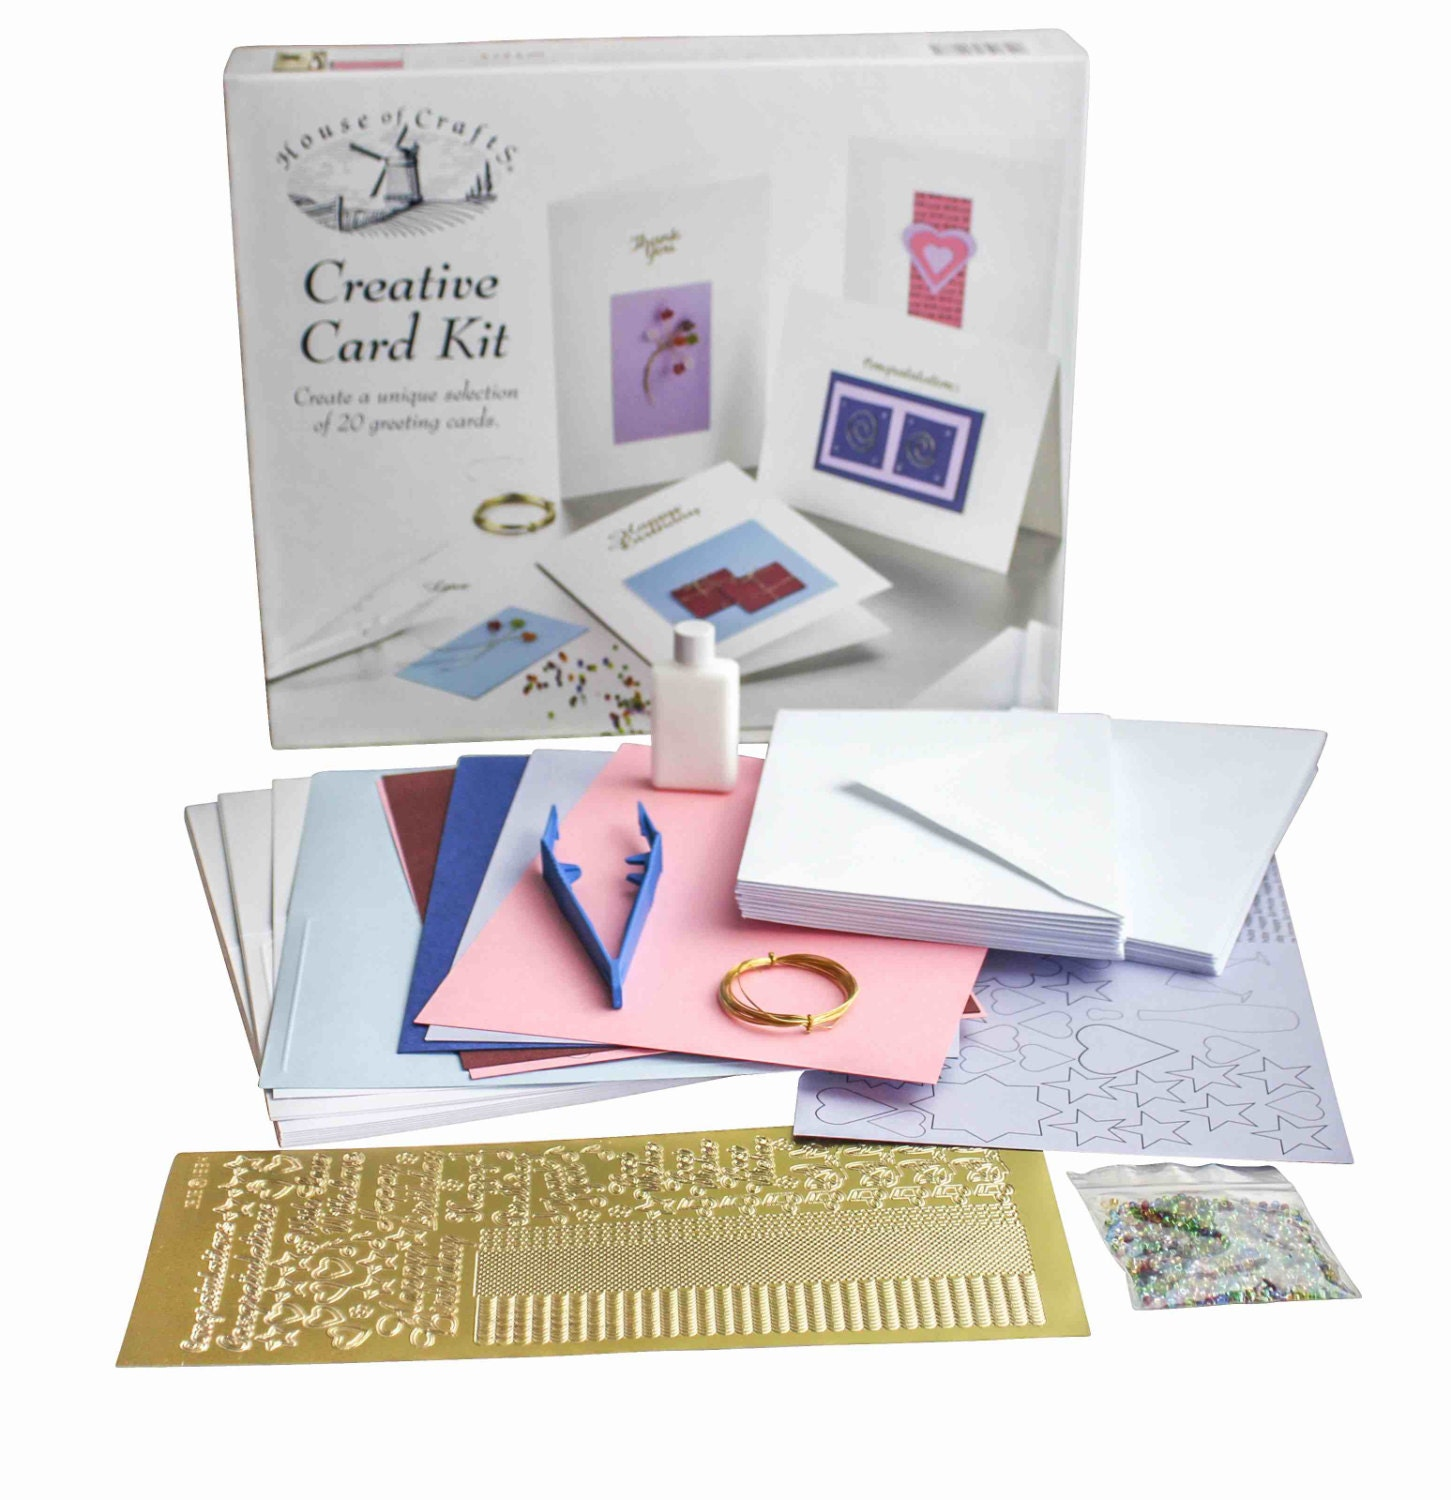 House of crafts creative card making kit